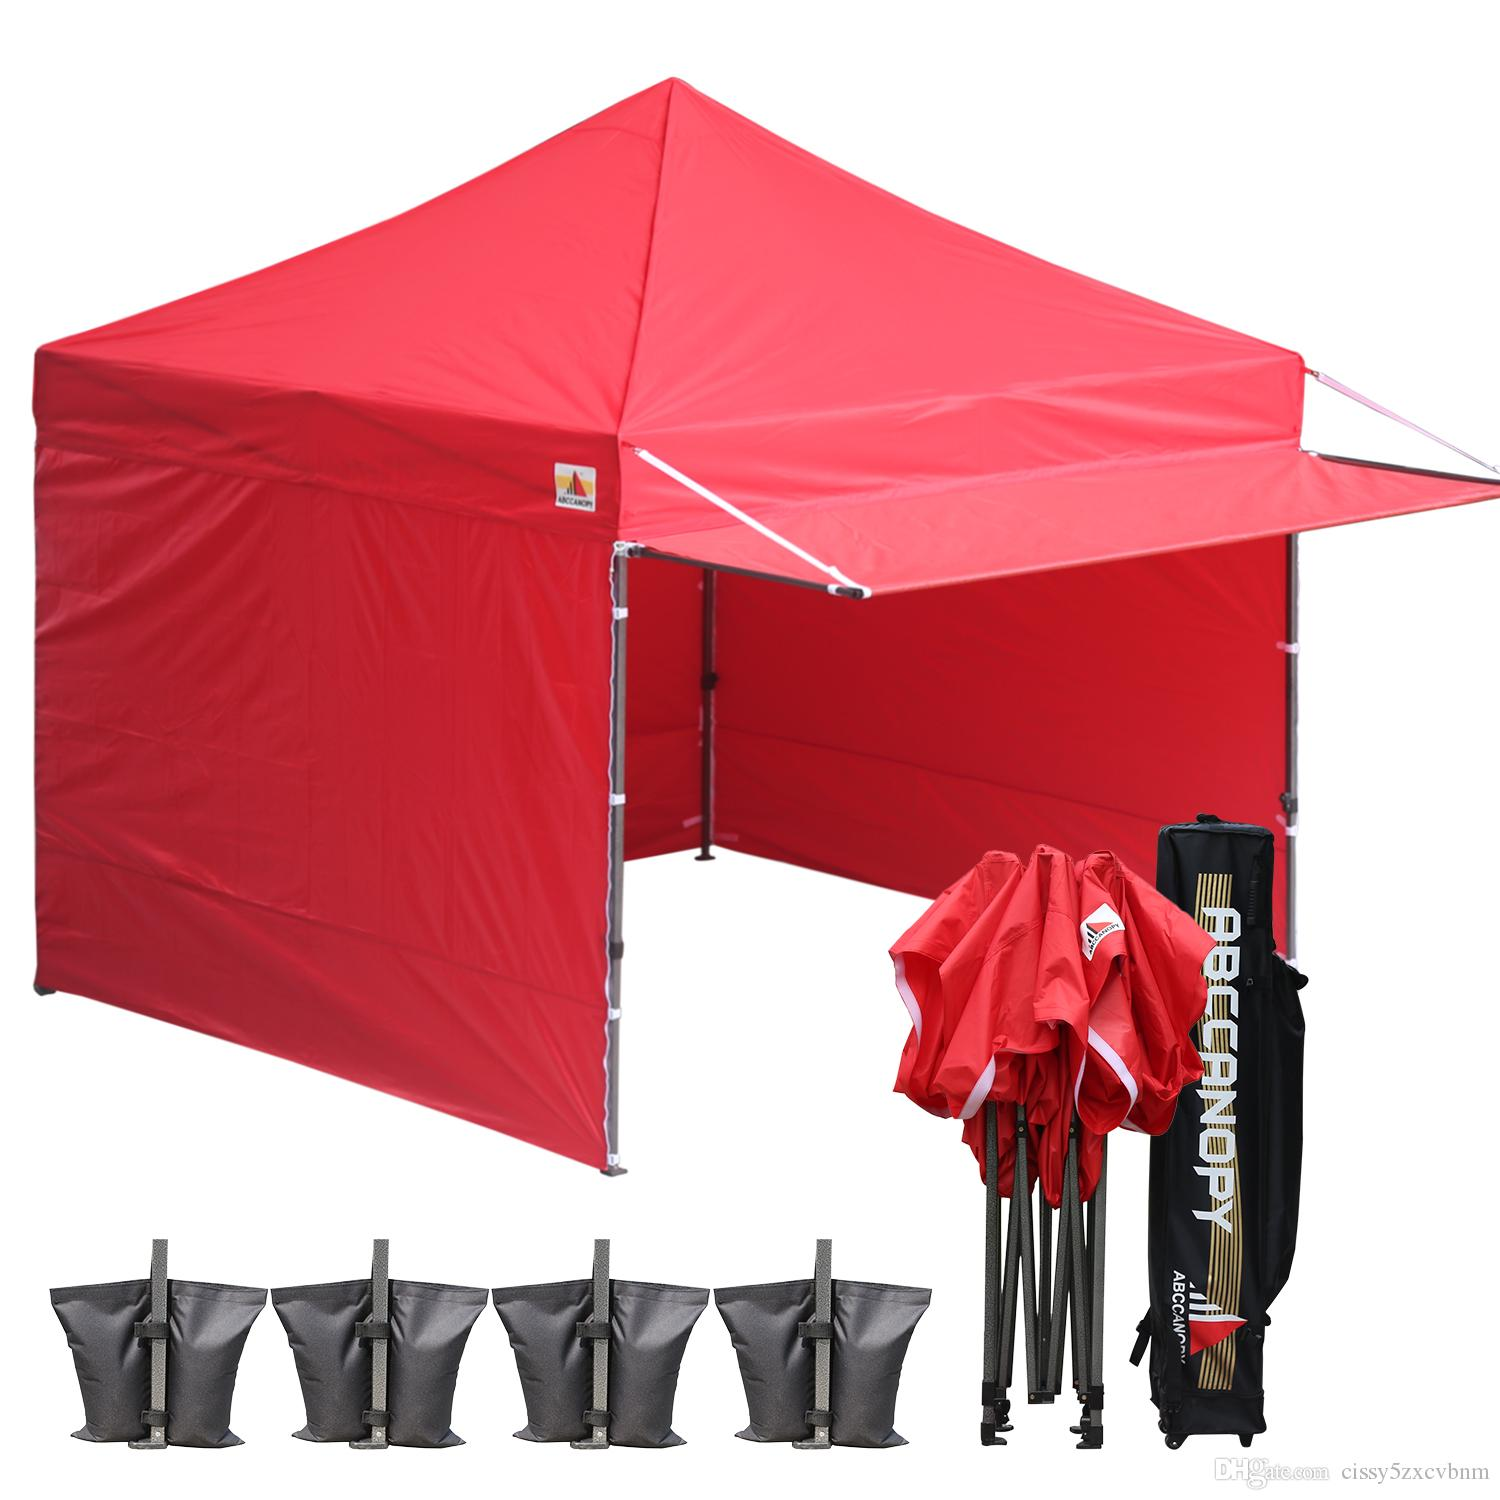 see larger image - 10x10 Canopy Tent